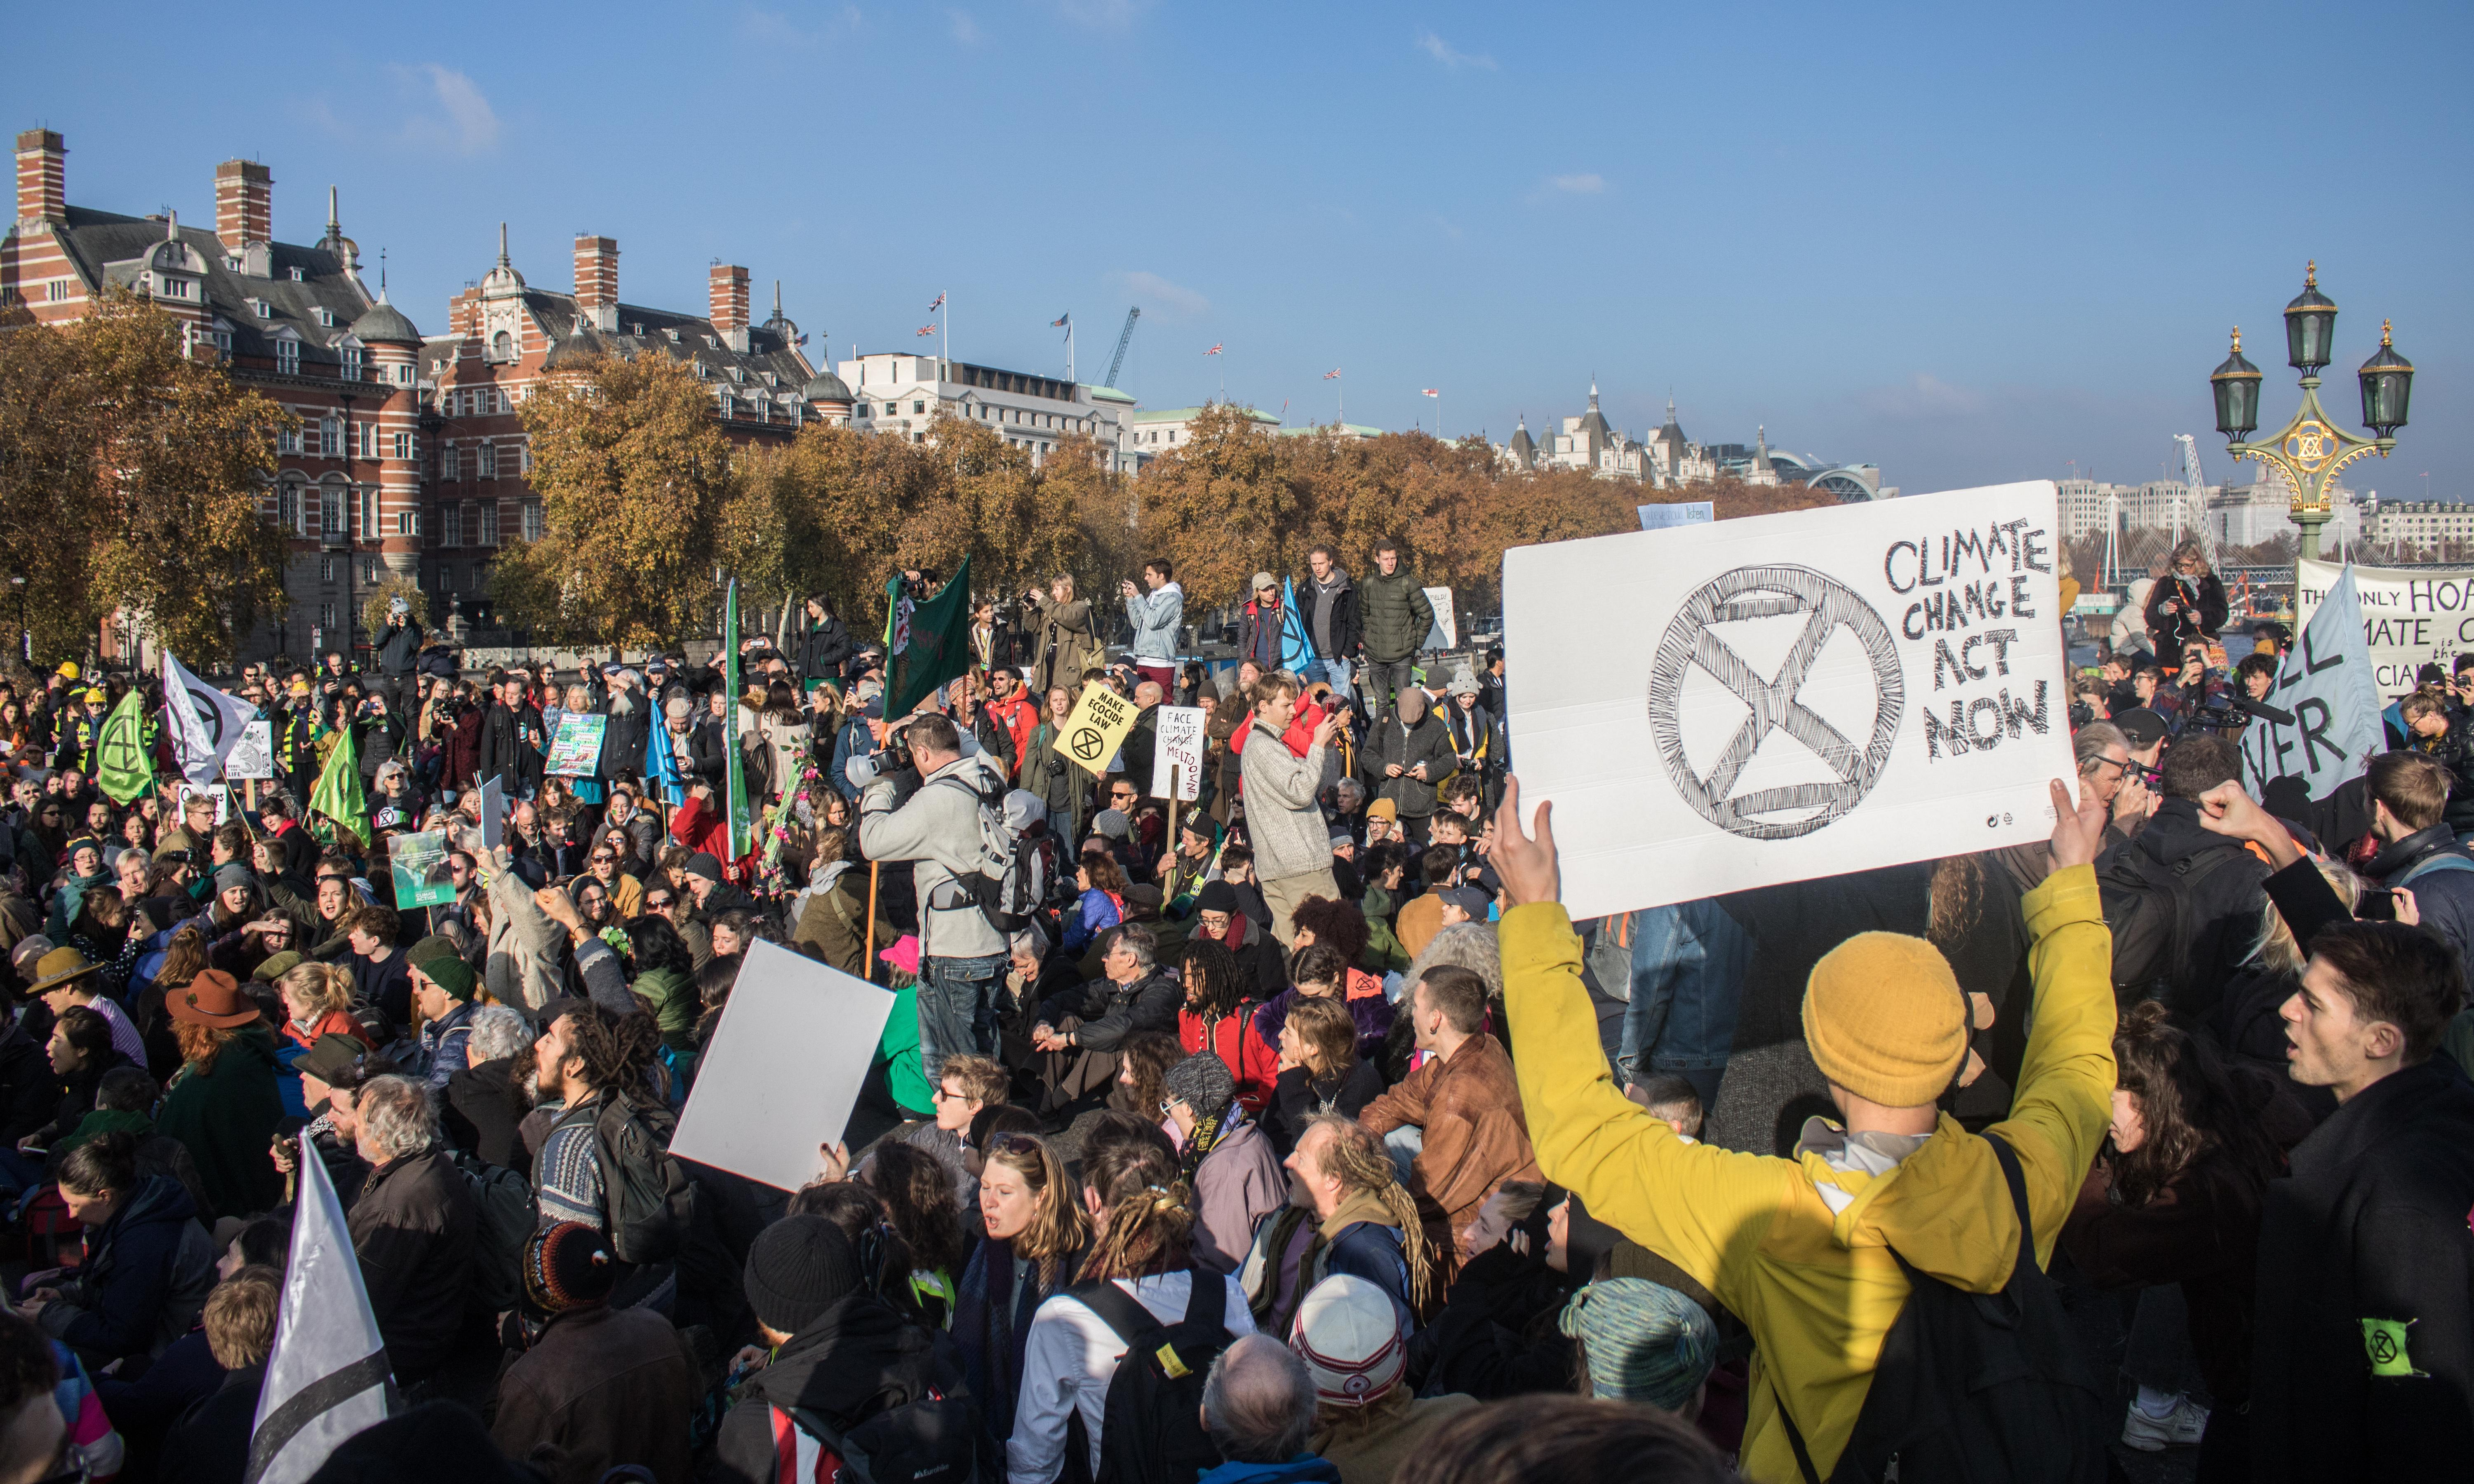 Extinction Rebellion goes global in run-up to week of international civil disobedience